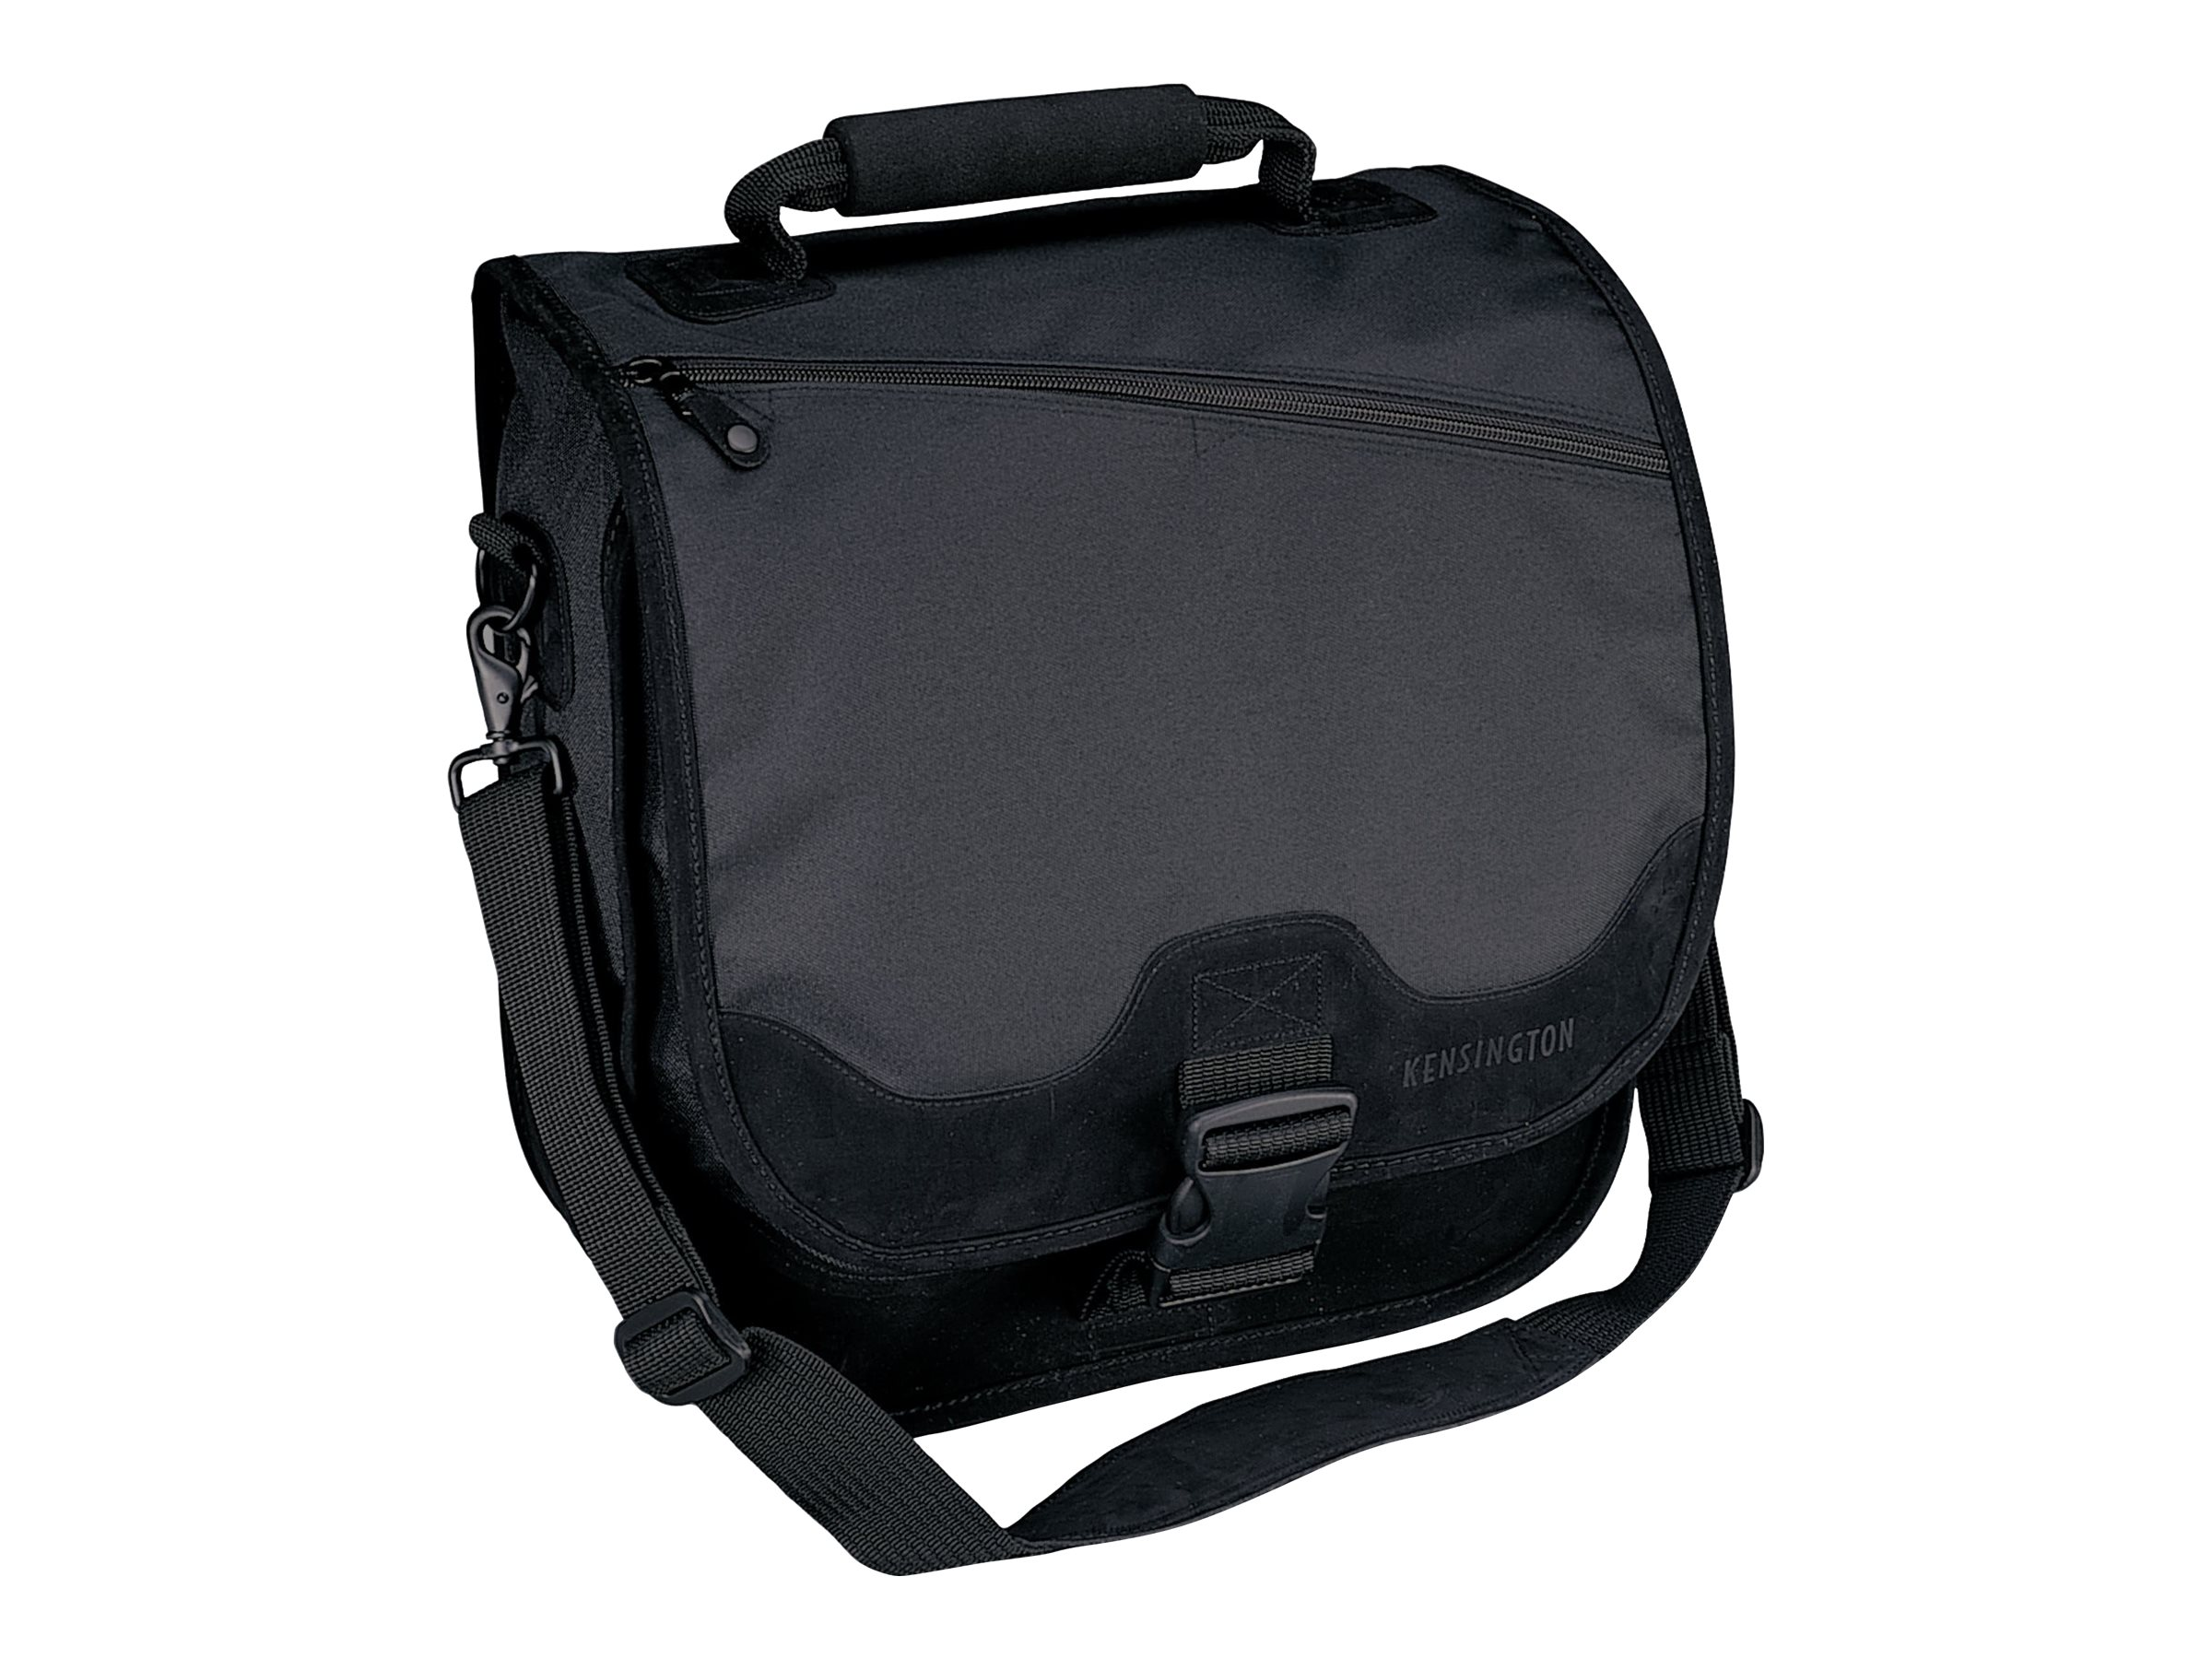 Kensington SaddleBag 15.6 Notebook Carrying Case, Black, K64079H